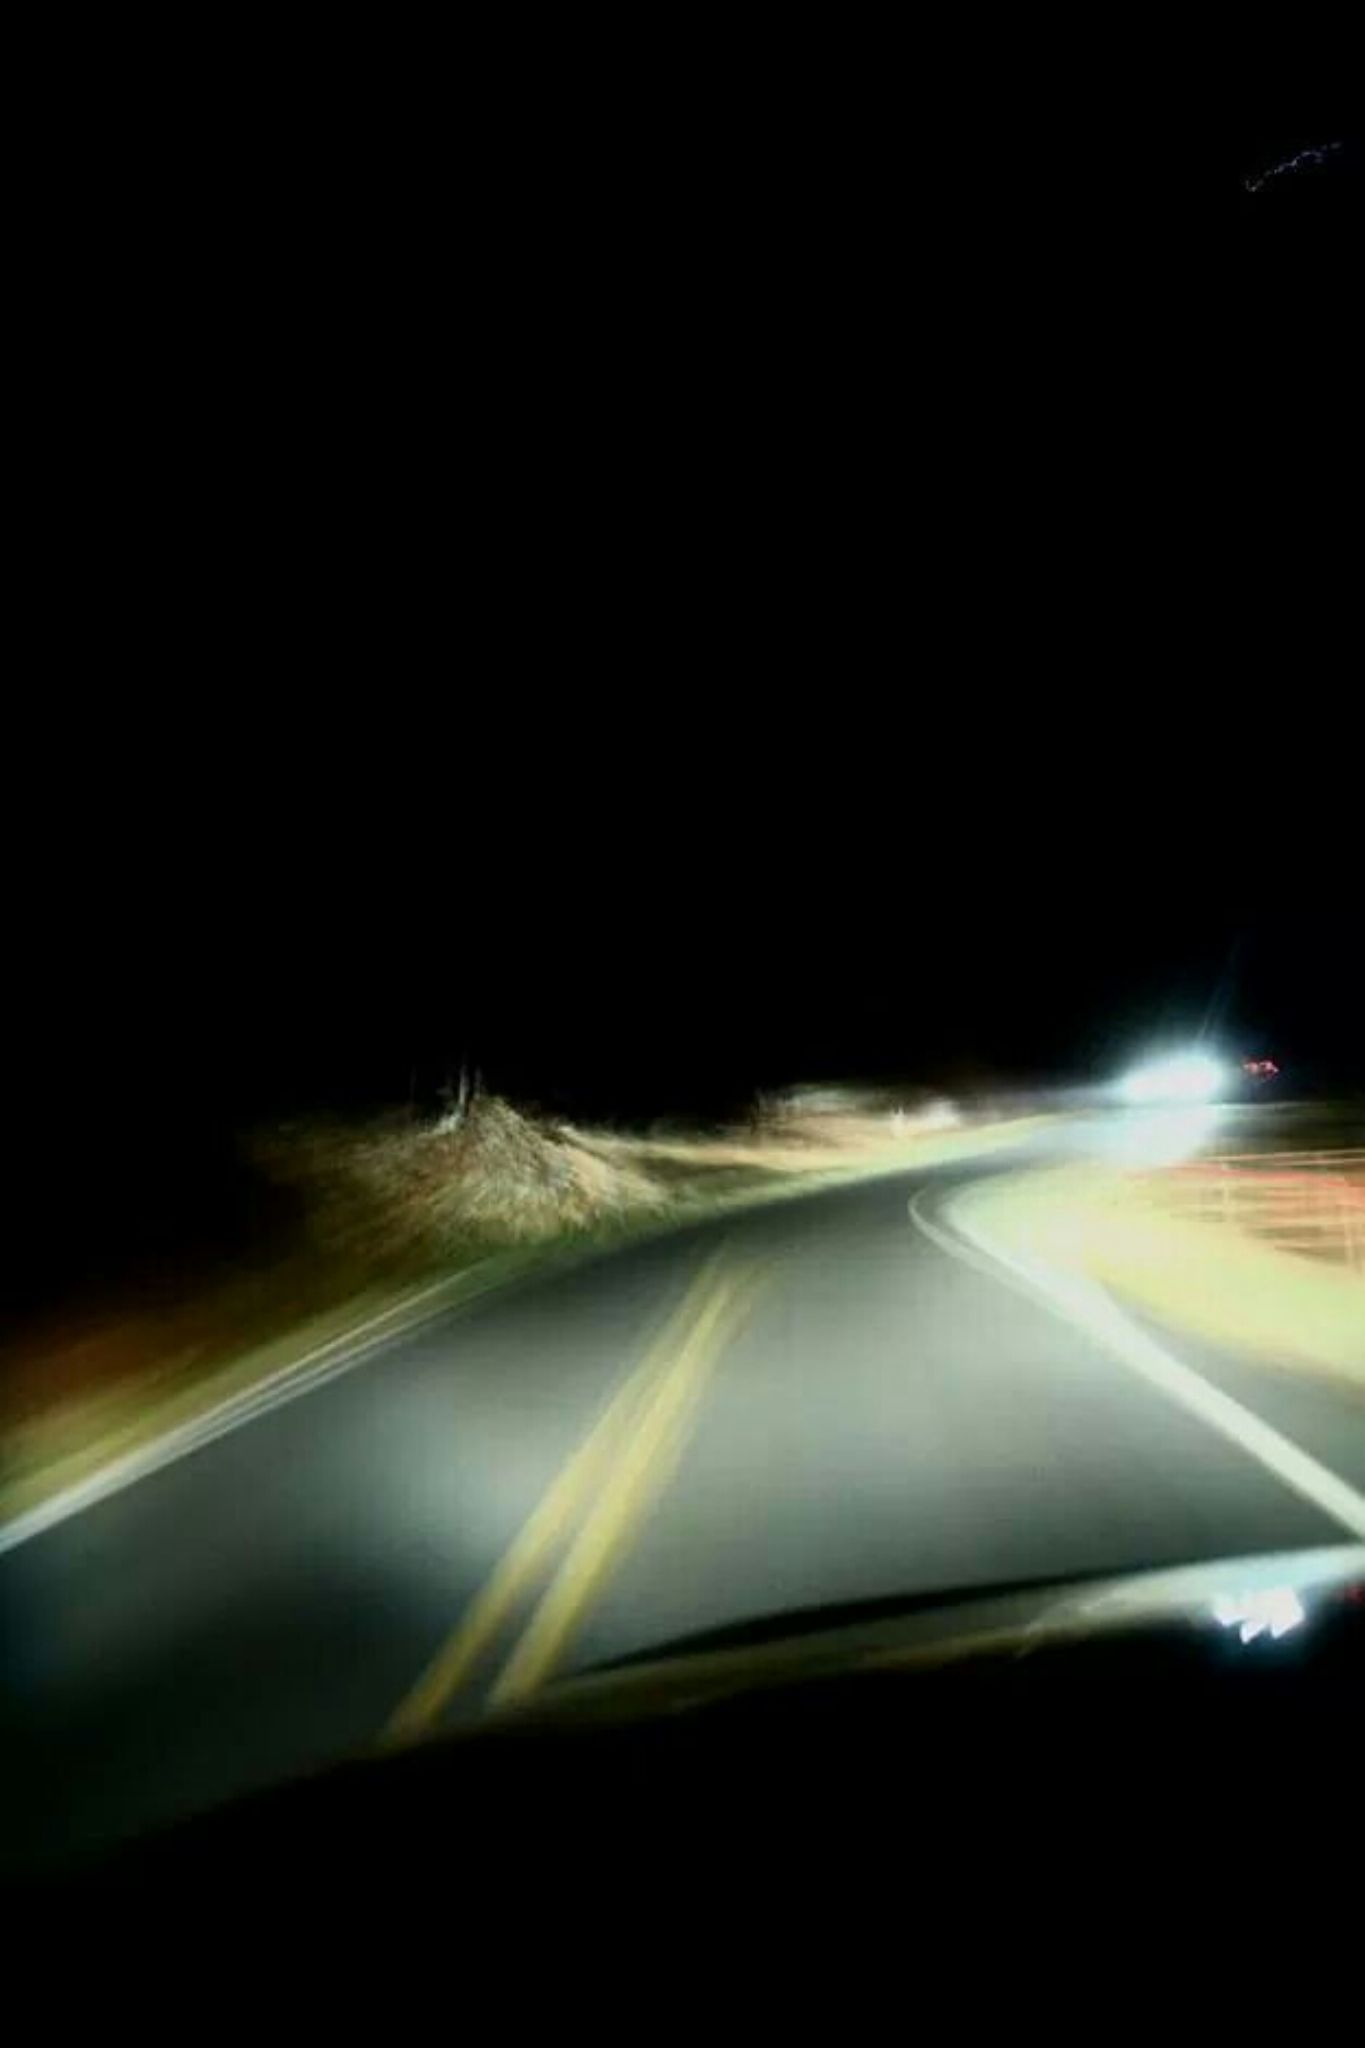 Night driving ( don't try this at home) by Jake Metcalf